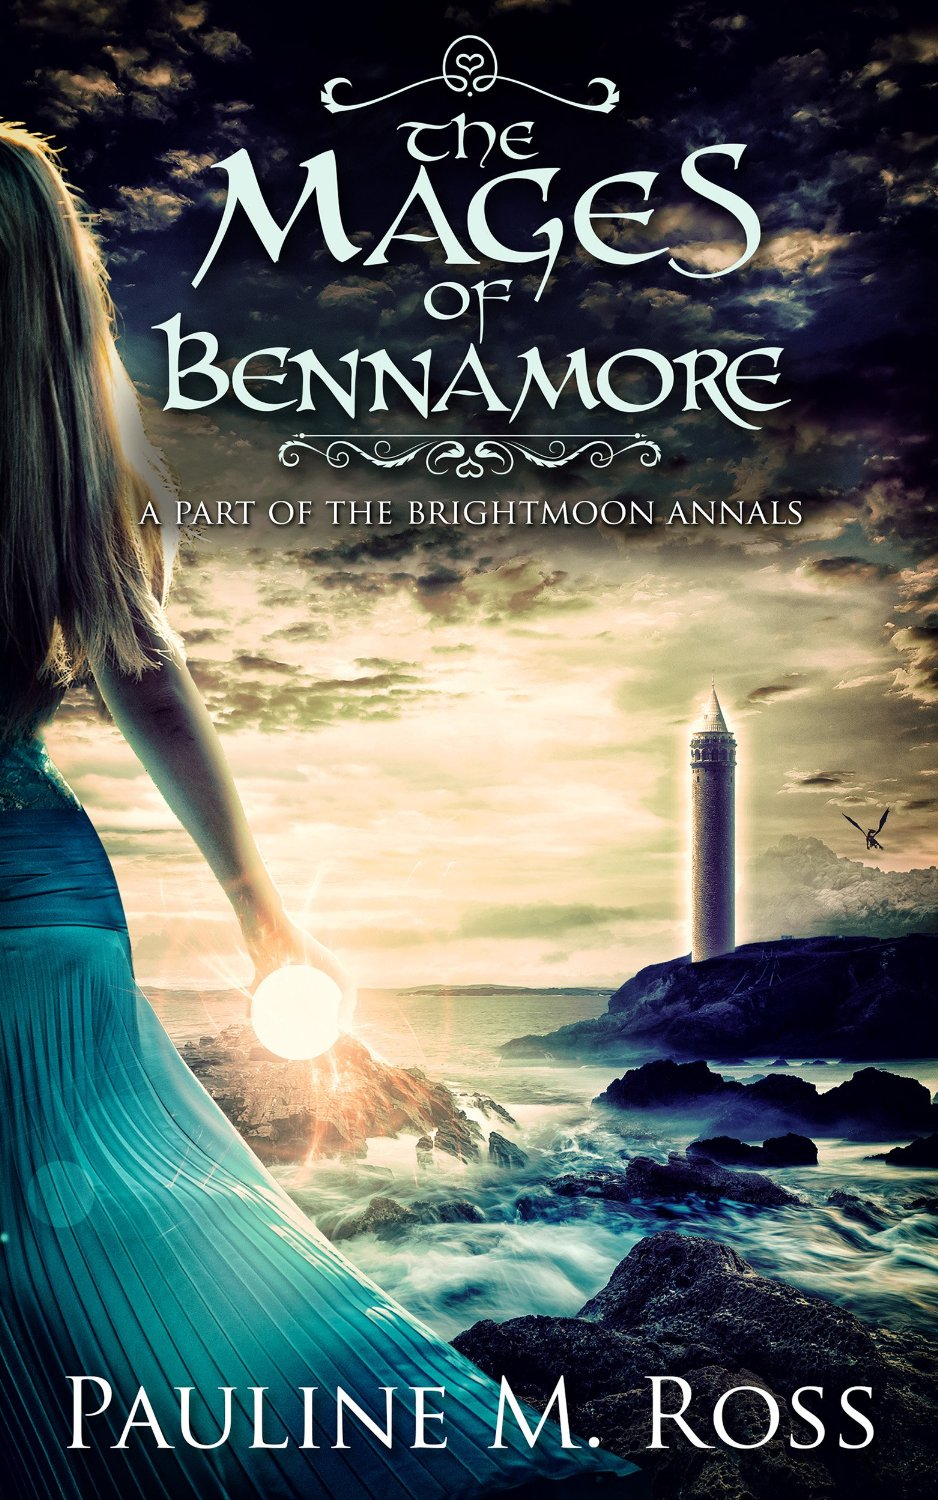 Review Of Pauline M Ross's Mages Of Bennamore